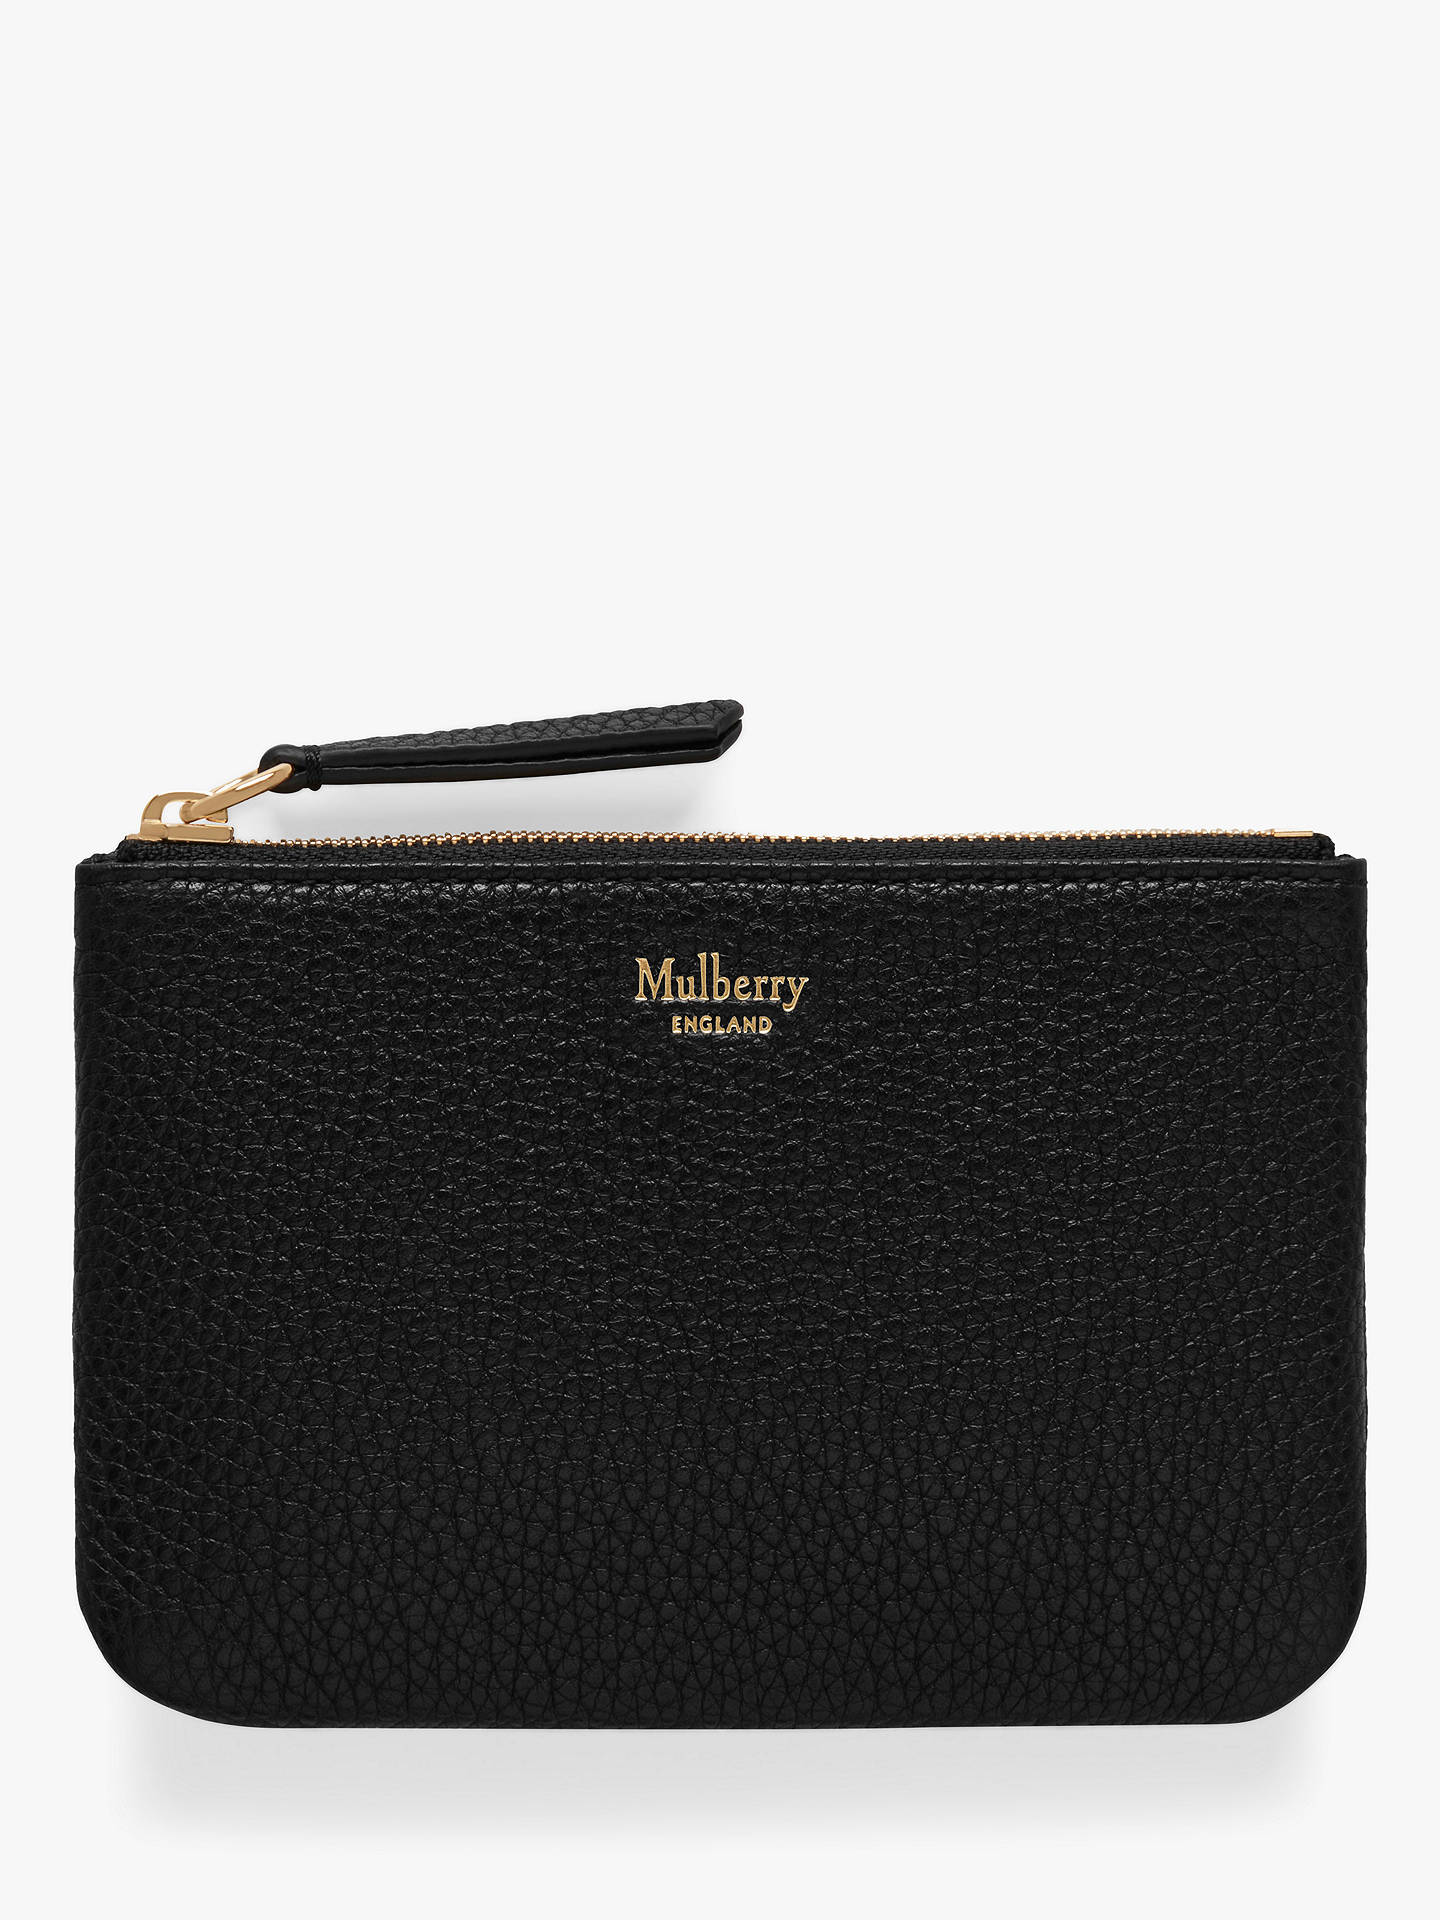 83dd5280 Mulberry Small Classic Grain Leather Zip Coin Pouch, Black